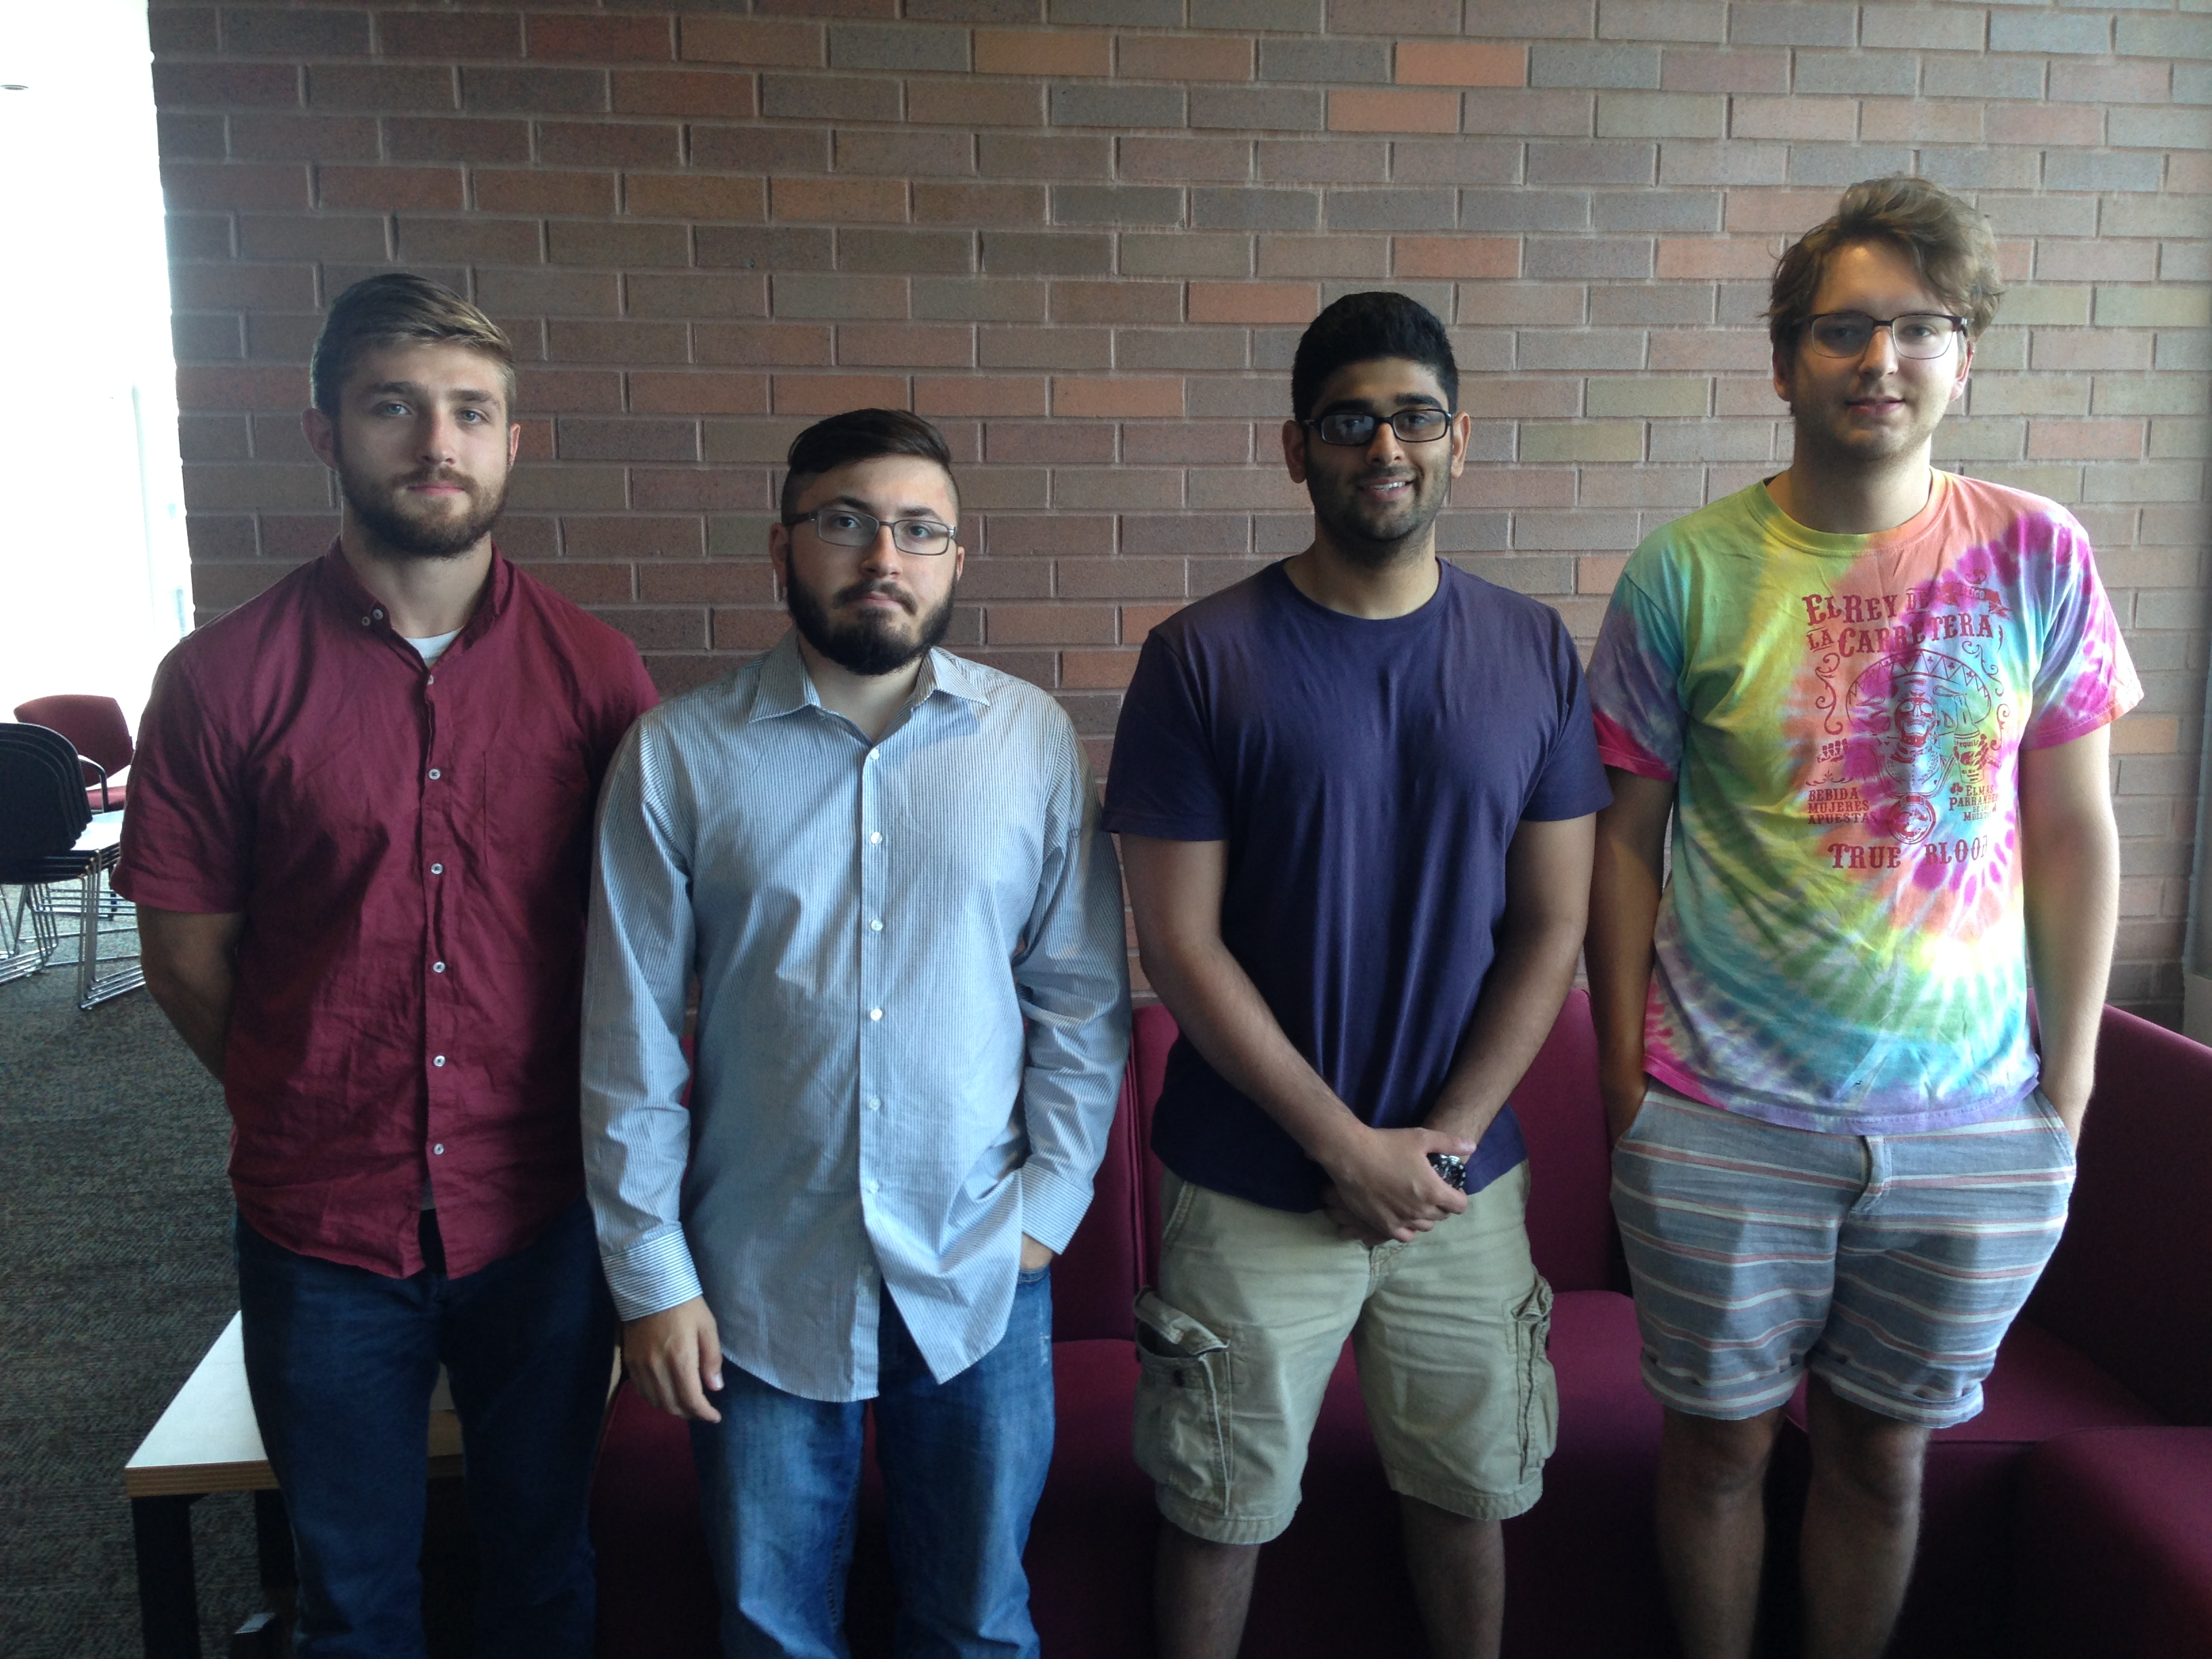 From left to right: Steven Lalowski, Erik Freeman, Jay Patel, and Niall O'Dowd